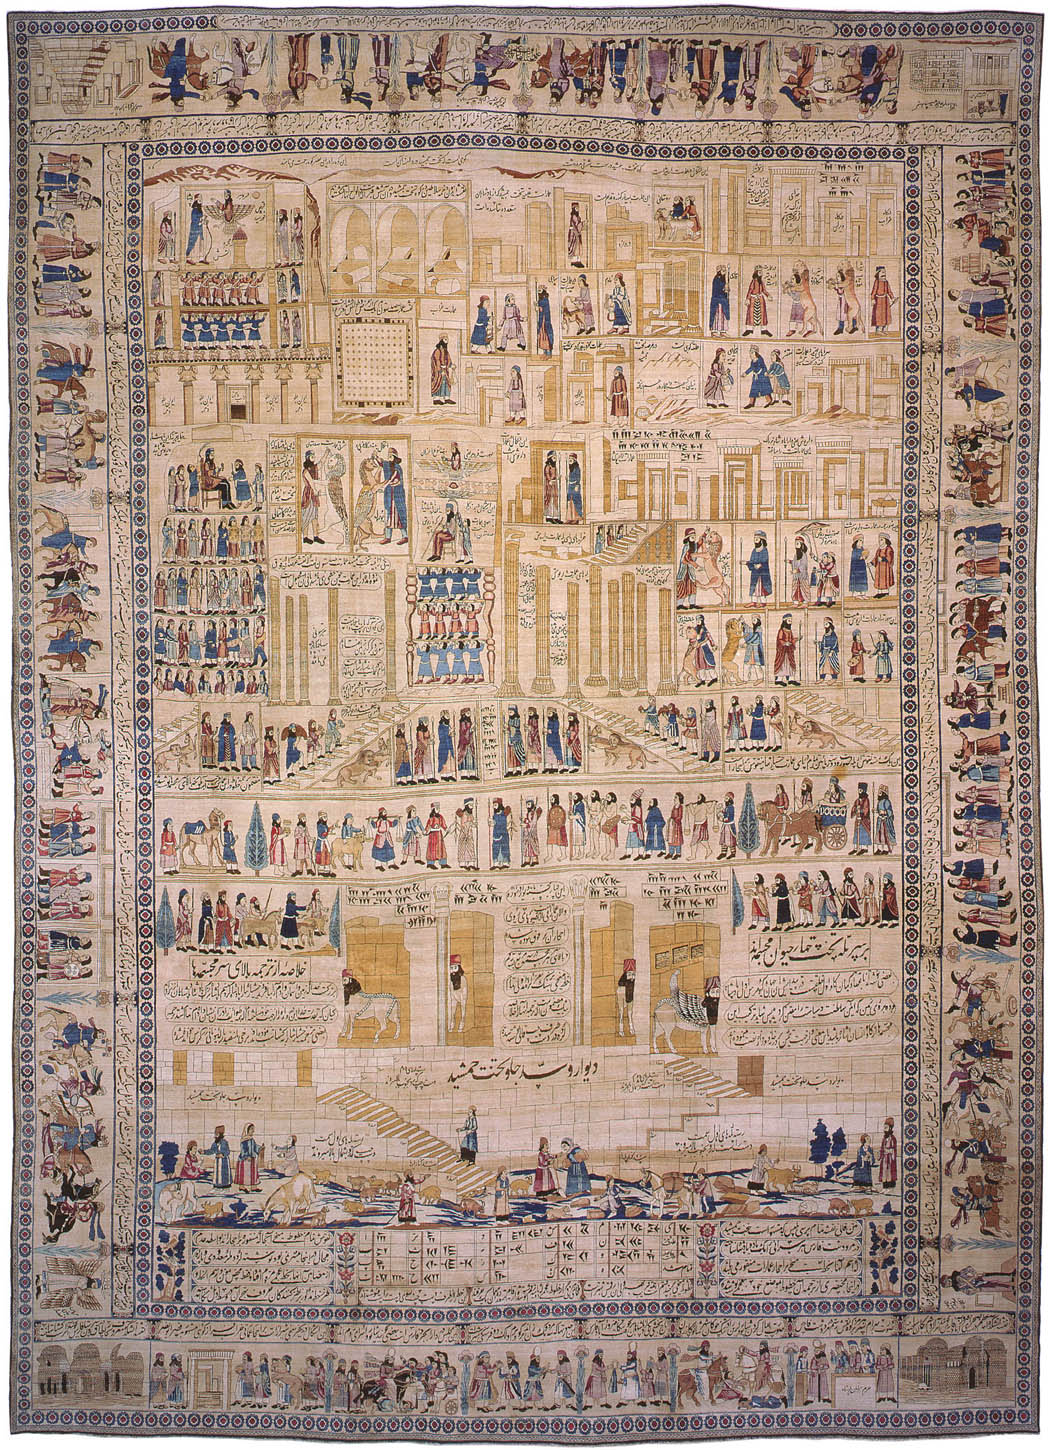 3206antiquerug1 Luxury Rugs and Fine Antique Carpets